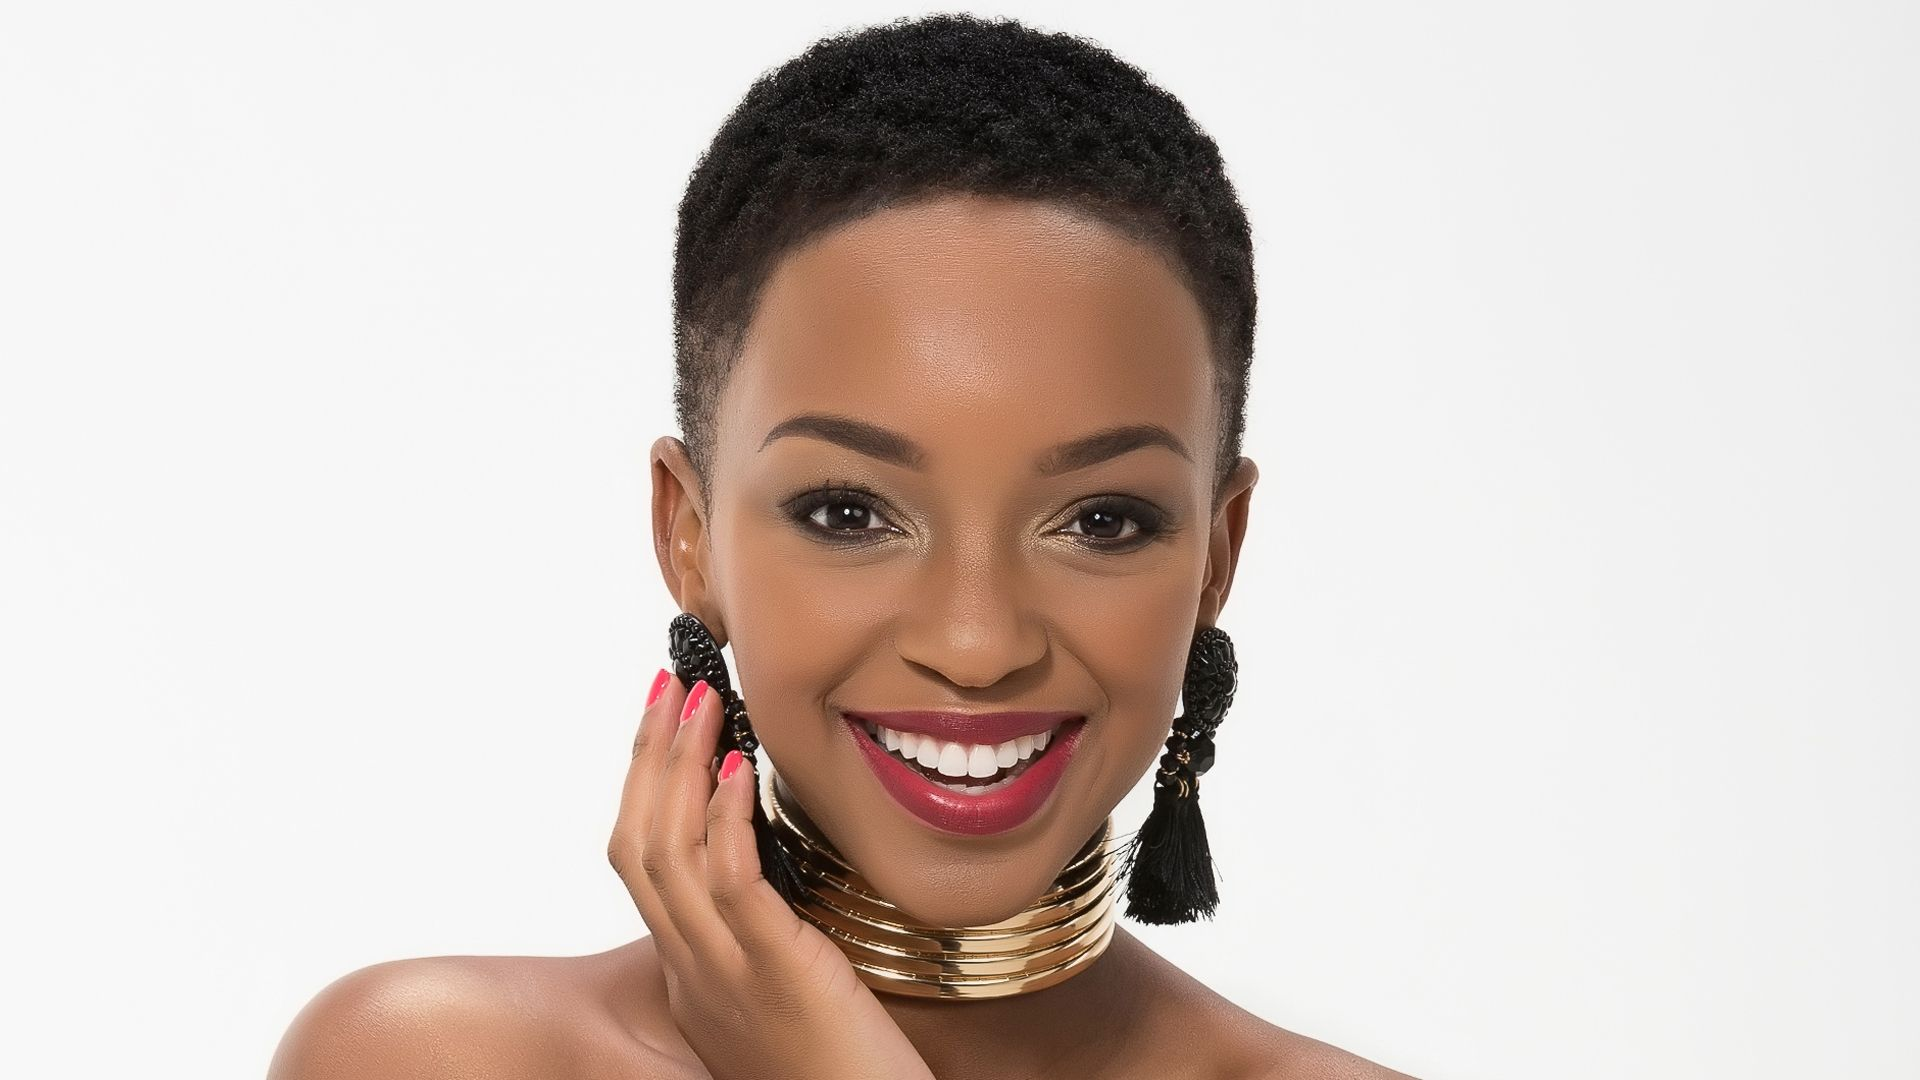 Welcome to Dating South Africa the 1 Place to Meet South African Singles